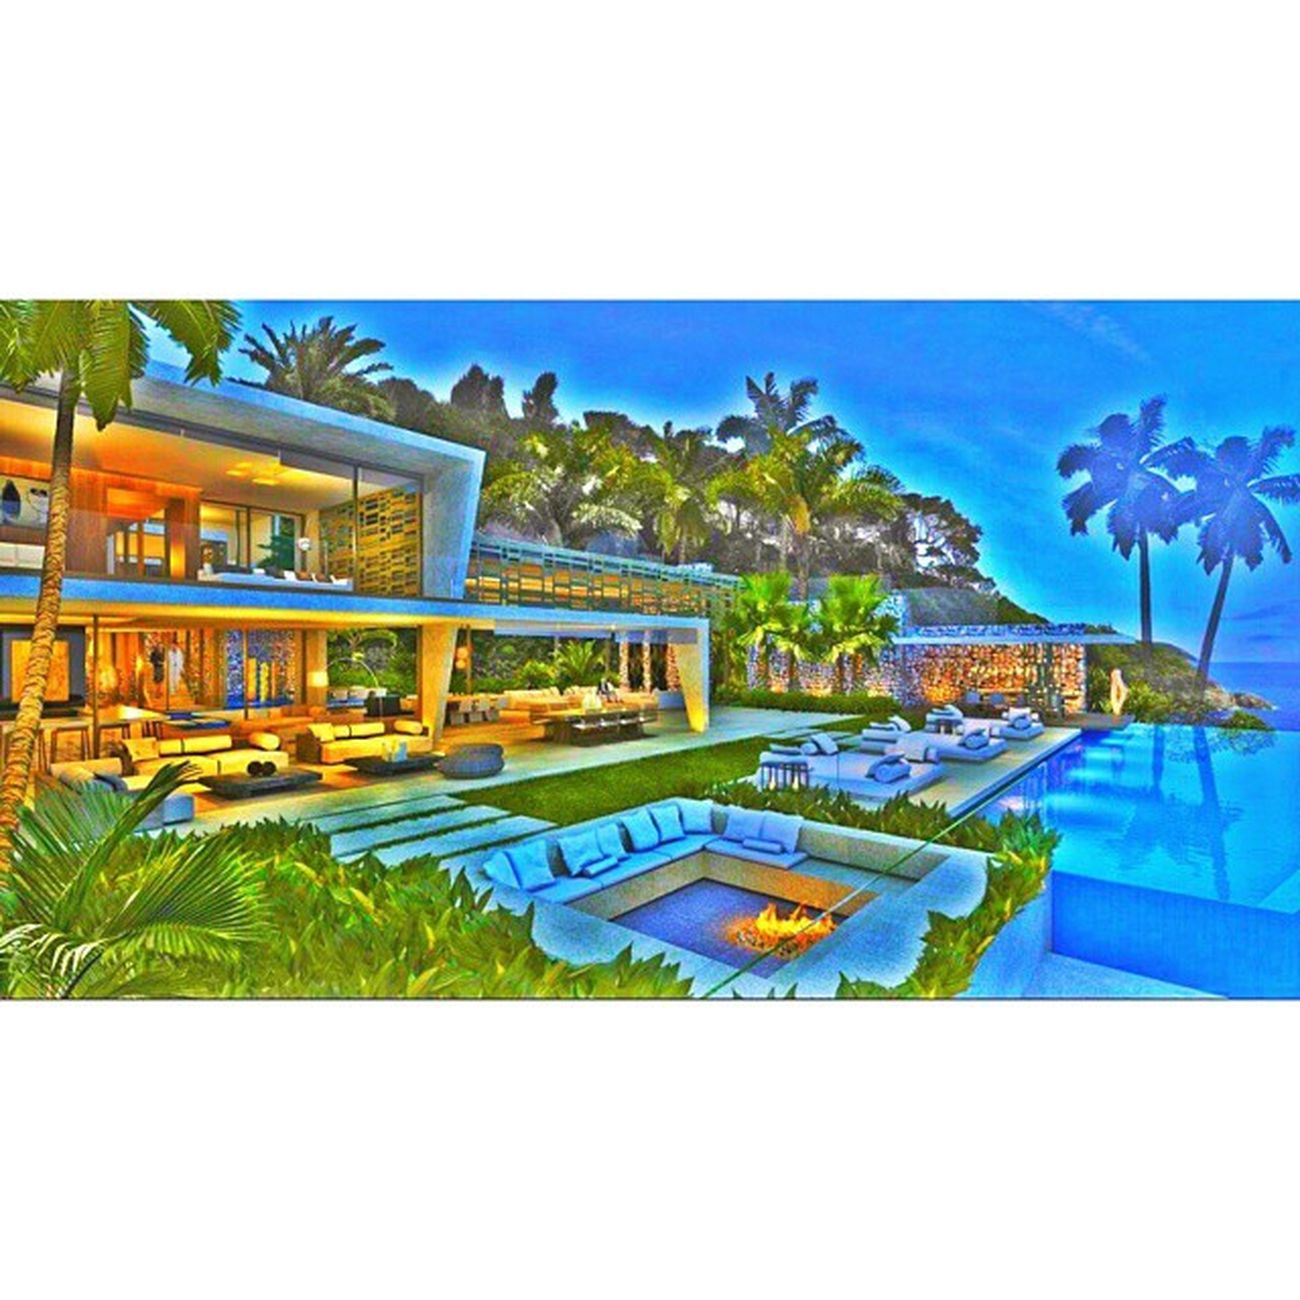 Luxury Realestate Dreamome Luxuryliving Mansion Millionairelife Millionaire Billionaire  Lavishliving Miami Losangeles Newyork Lasvegas Atlanta London Palmbeach Paris Sanfrancisco Sandiego Beverlyhills Tokyo Shanghai Cancun Photooftheday Bestoftheday style styleblogger fashionblogger LuxuryBlogger